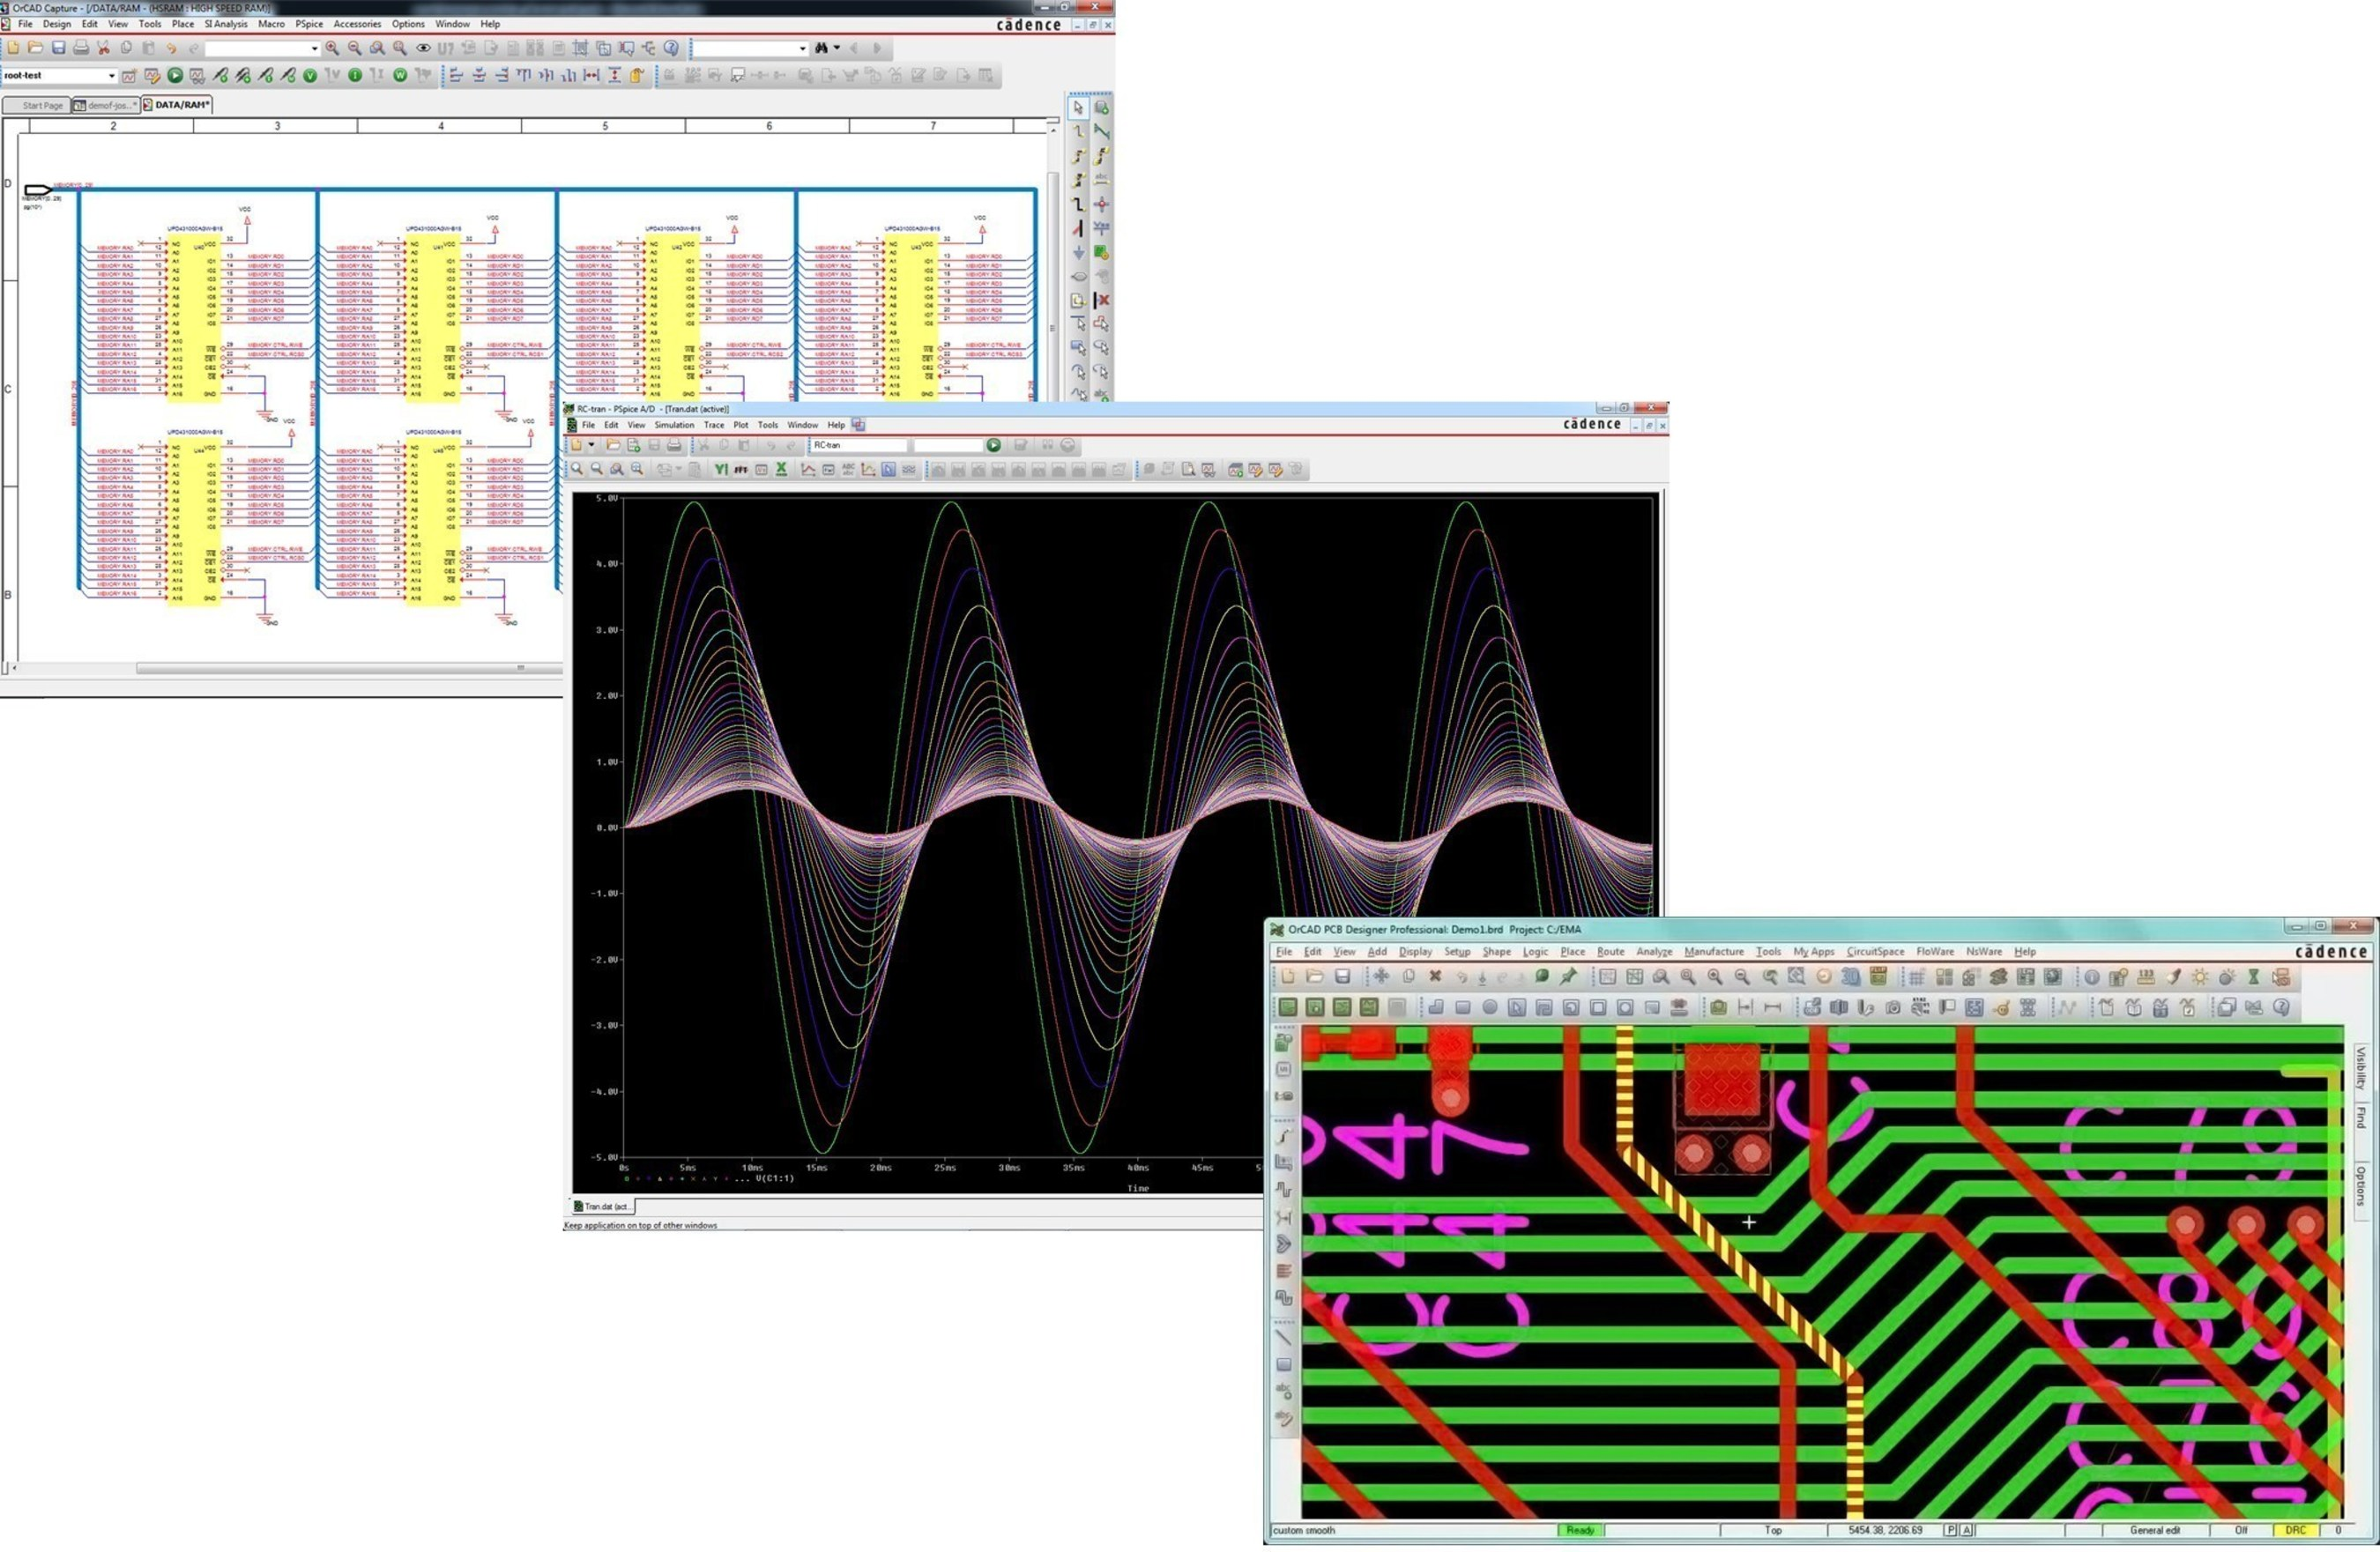 New Cadence OrCAD solution provides a complete scalable and an integrated solution from schematics to simulation to layout using Capture, PSpice Designer and PCB Designer that address challenges with flex and rigid-flex design as well as mixed-signal simulation complexities in IoT, wearables and wireless mobile devices.